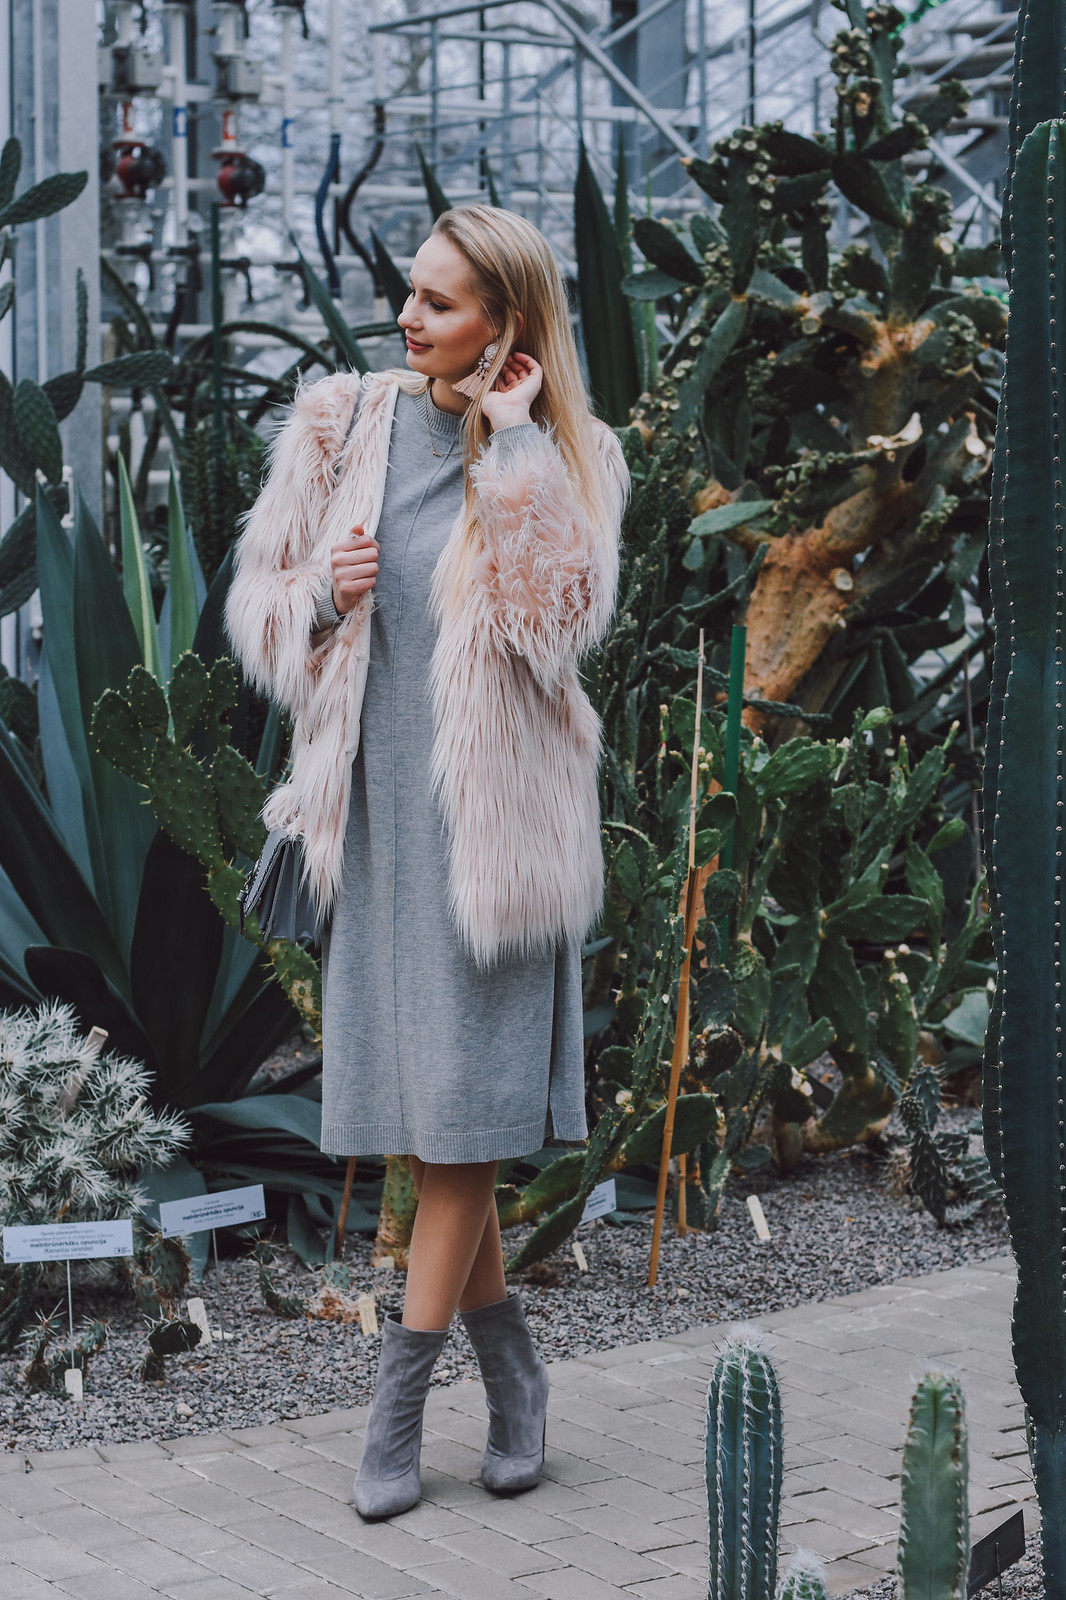 Feminine winter outfit